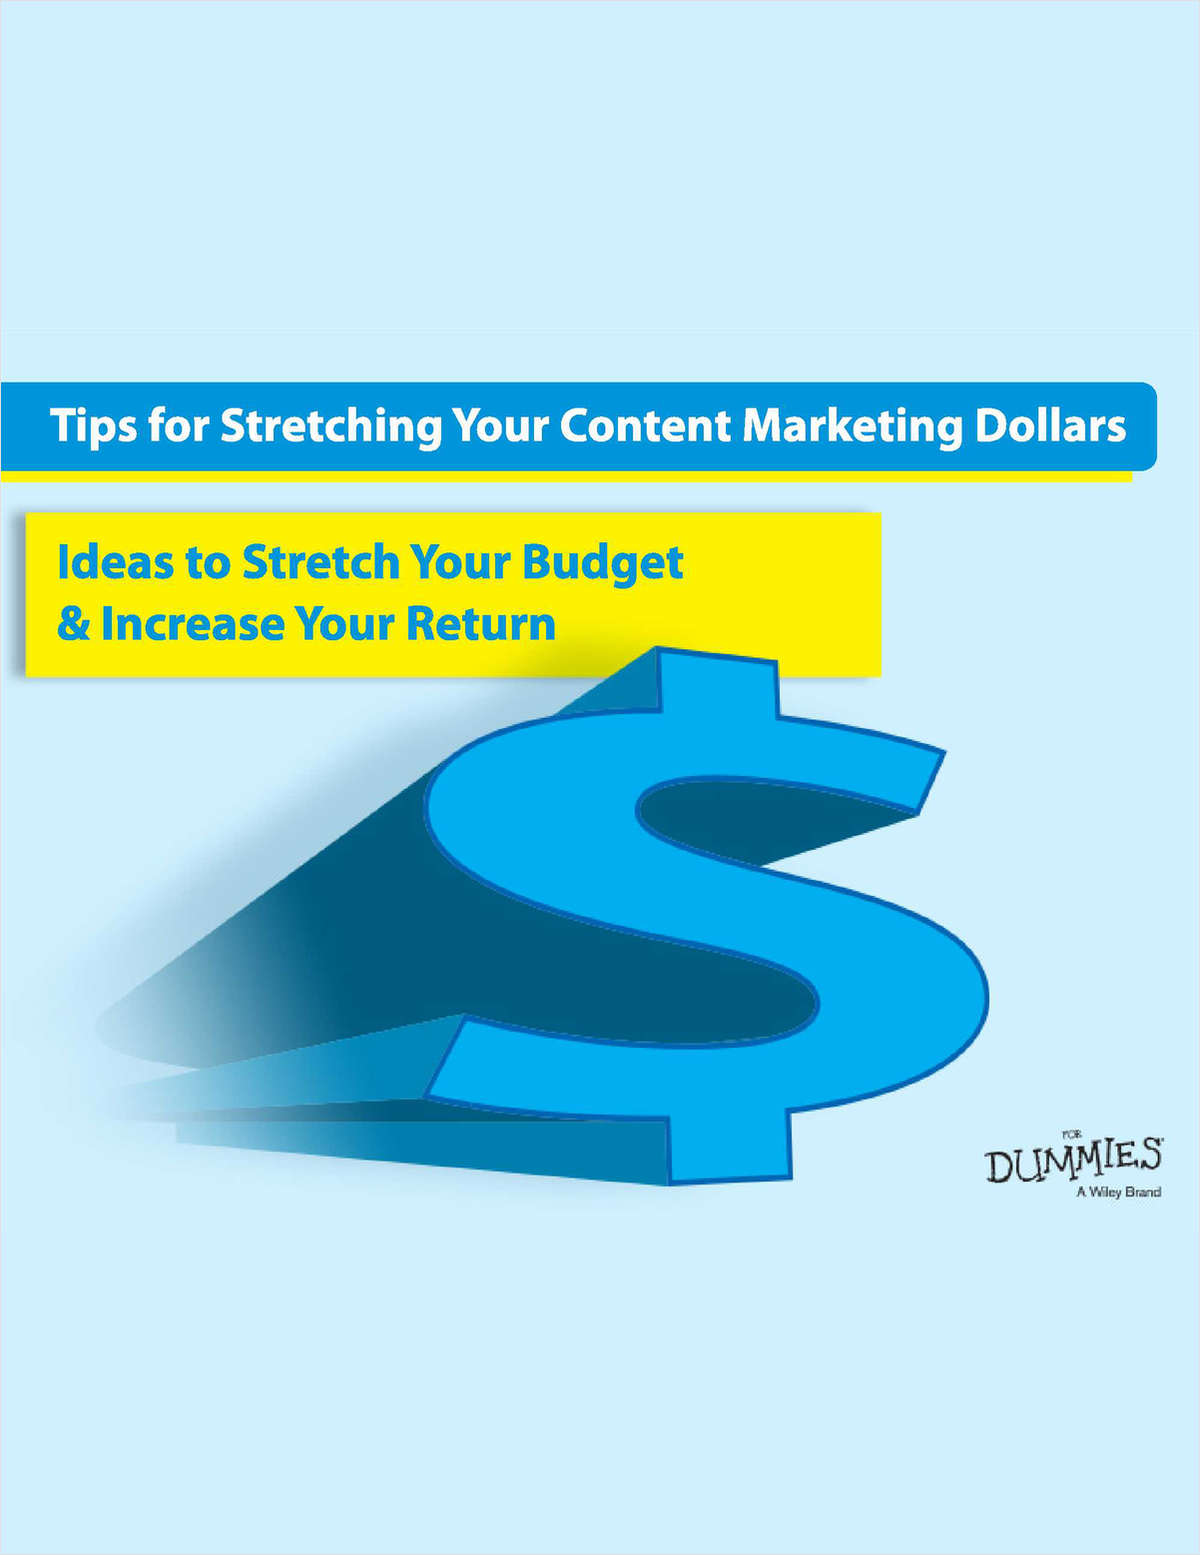 Tips for Stretching Your Content Marketing Dollars